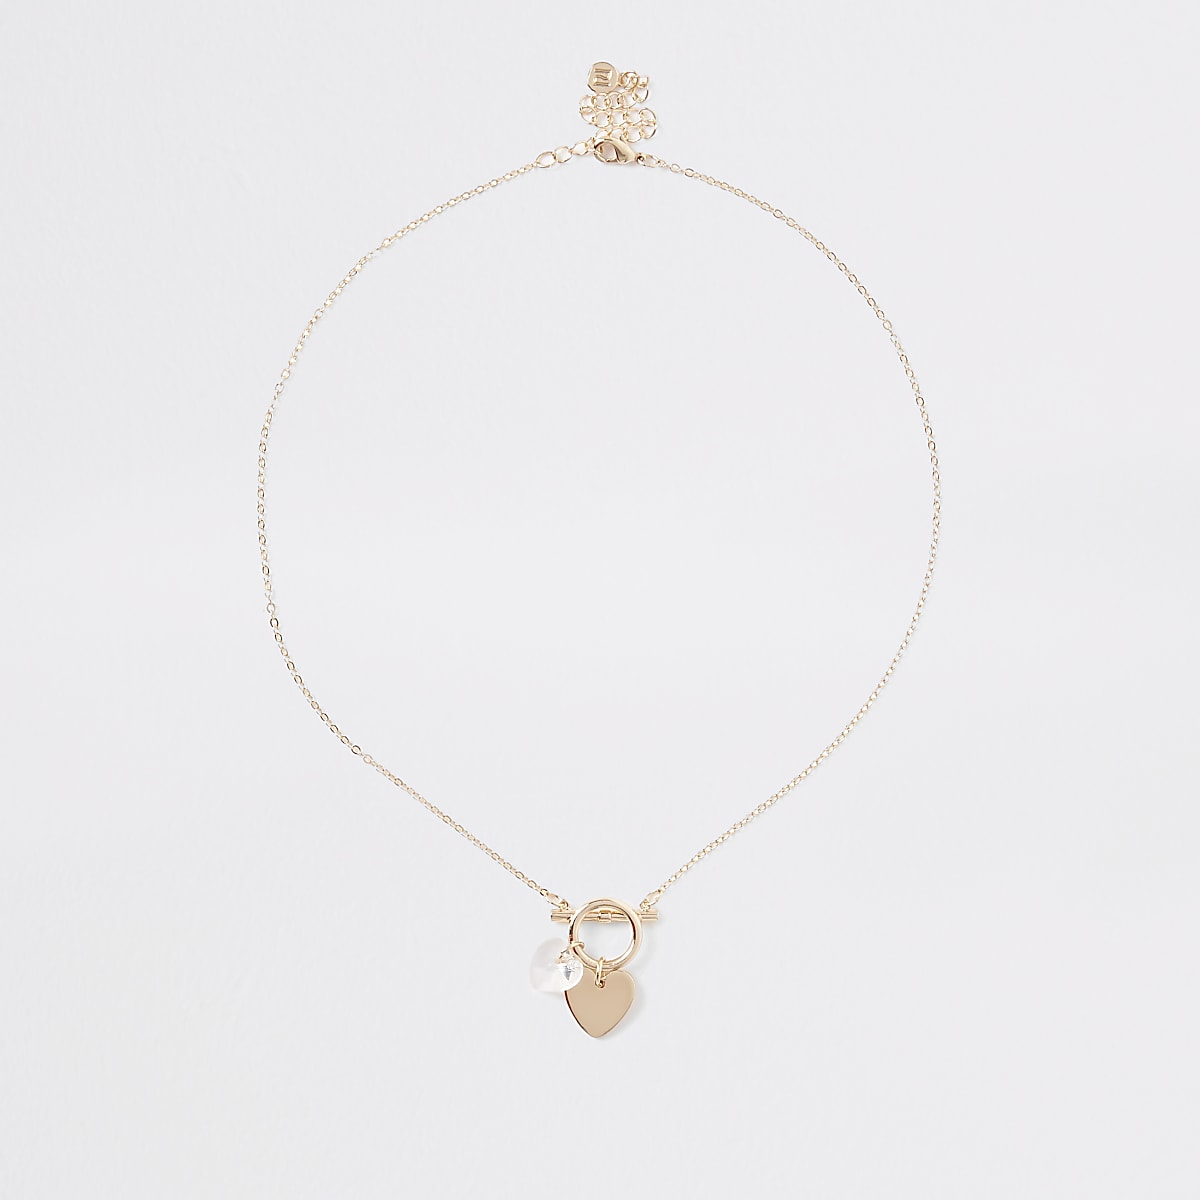 Gold color delicate heart bar necklace